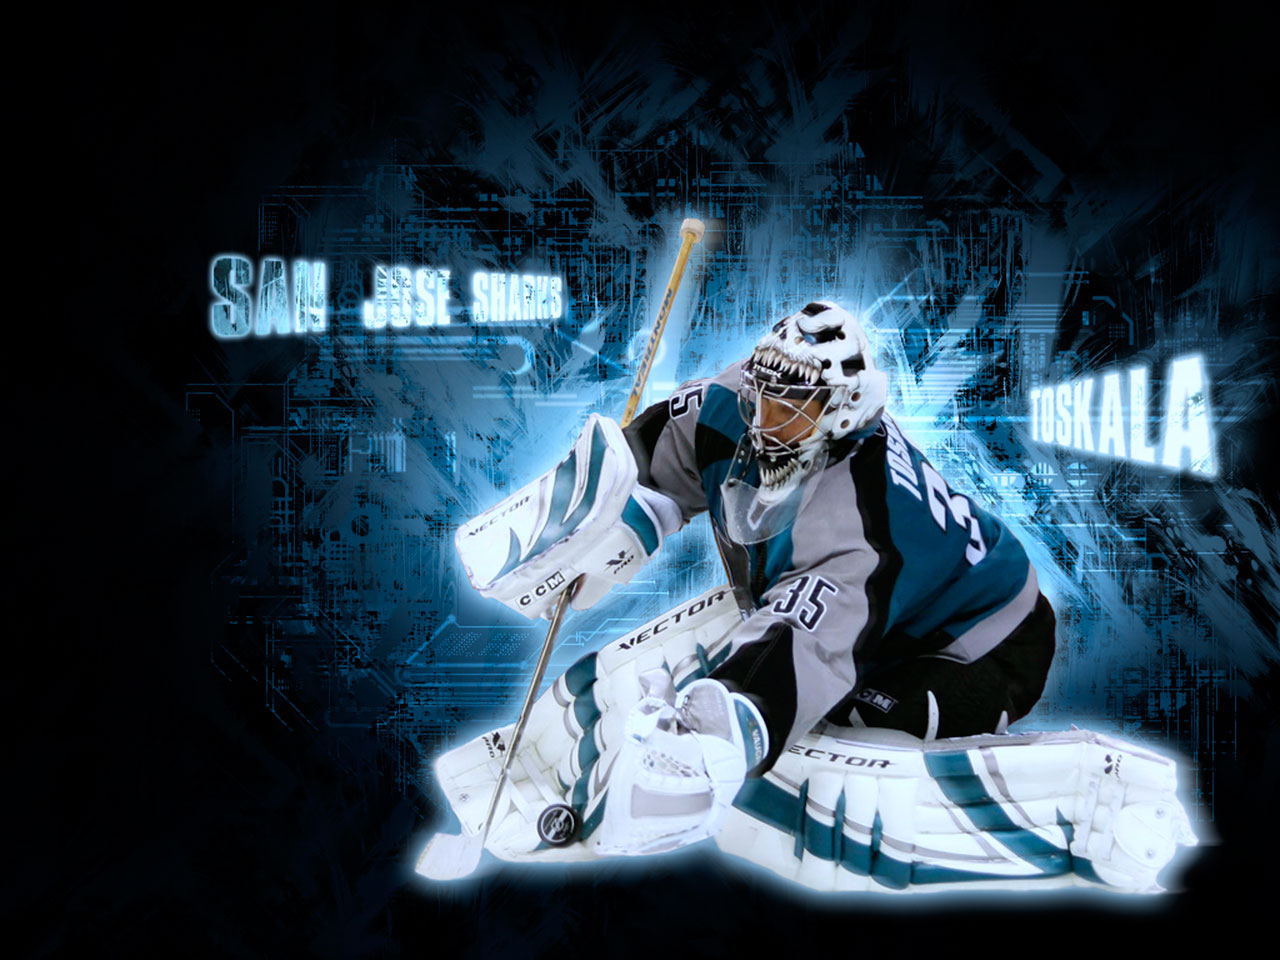 onlyhdwallpaperscomsportsports hockey desktop hd wallpaper 793746 1280x960